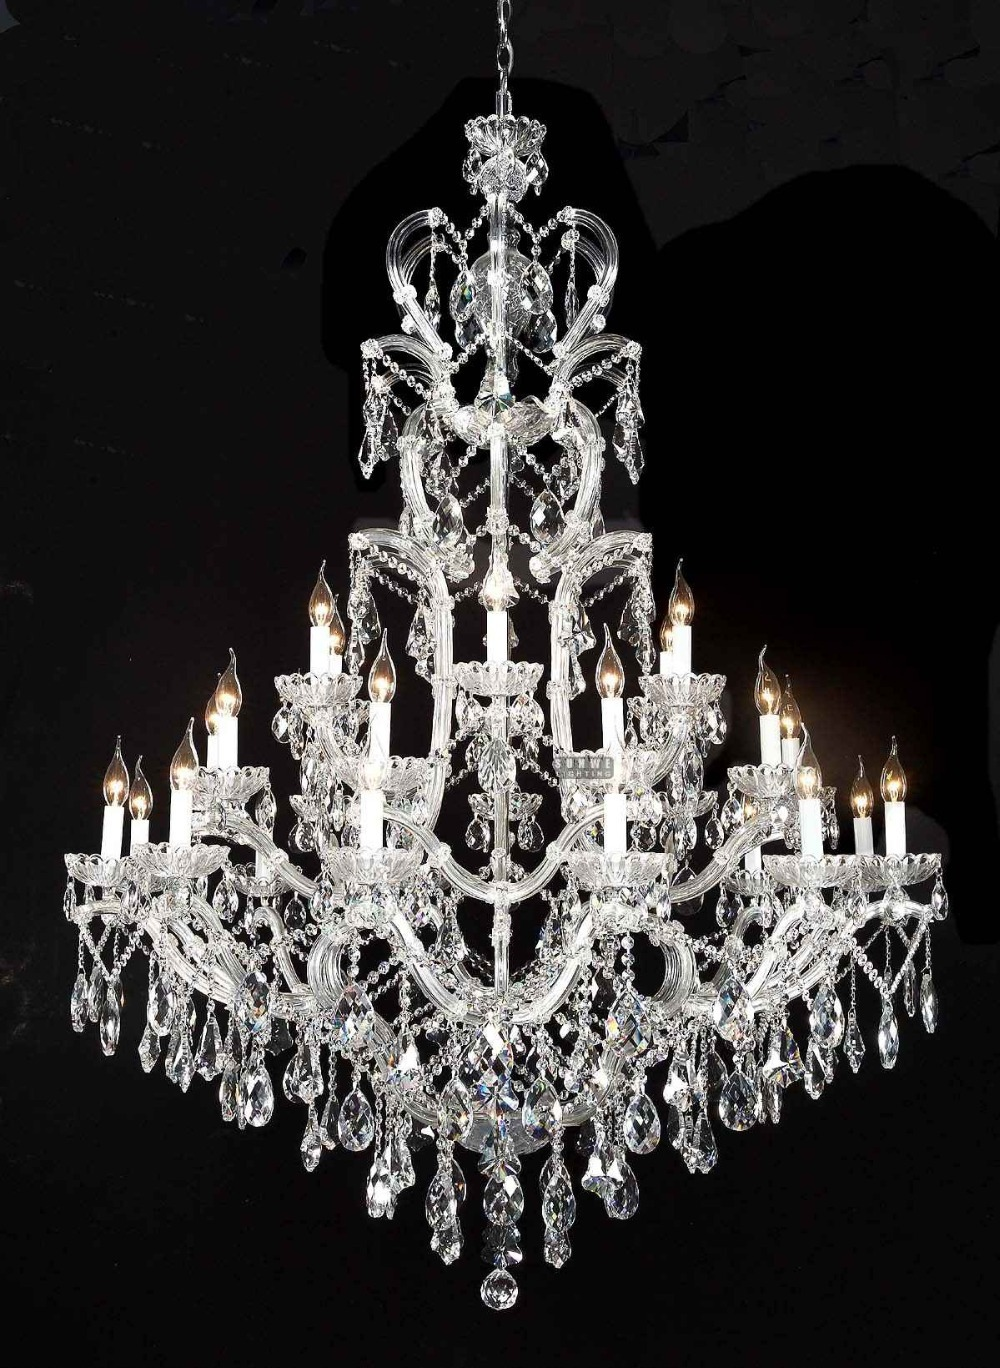 Beautiful Crystal Chandelier Lighting Fixture Candle: crystal candle chandelier